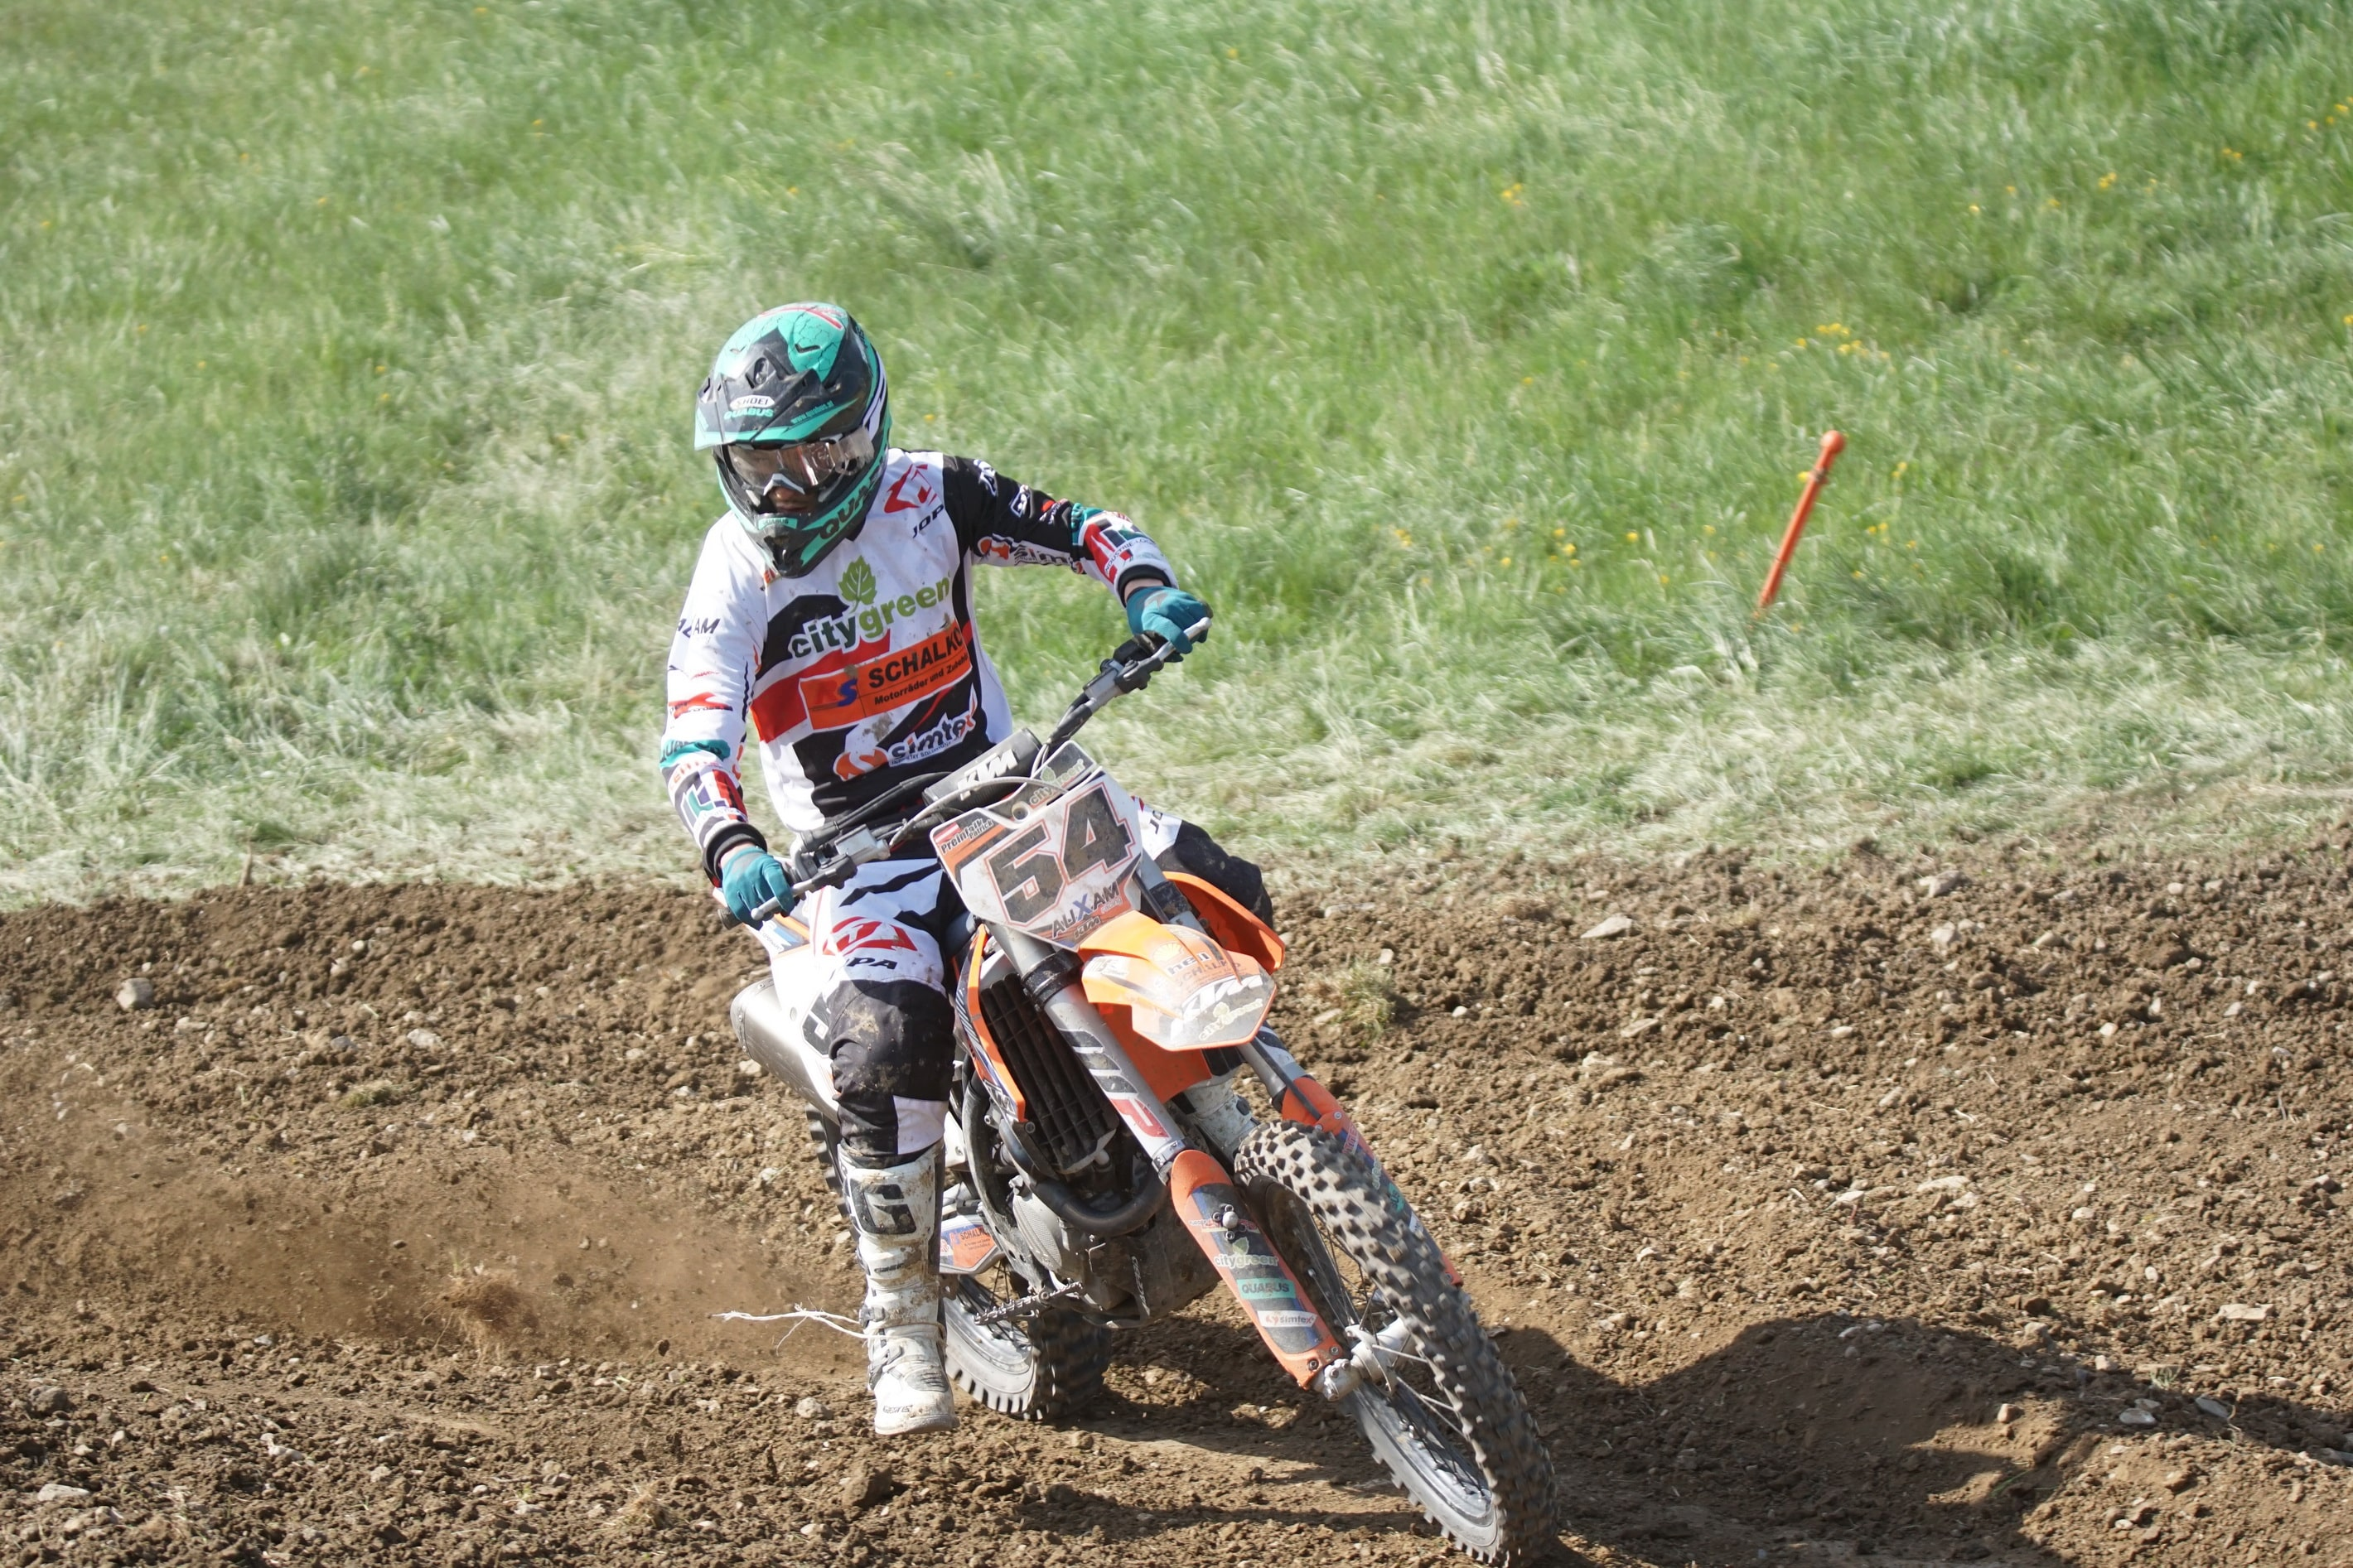 DSC 906_Moto Cross Sittendorf Teil1 am 29.04.2018